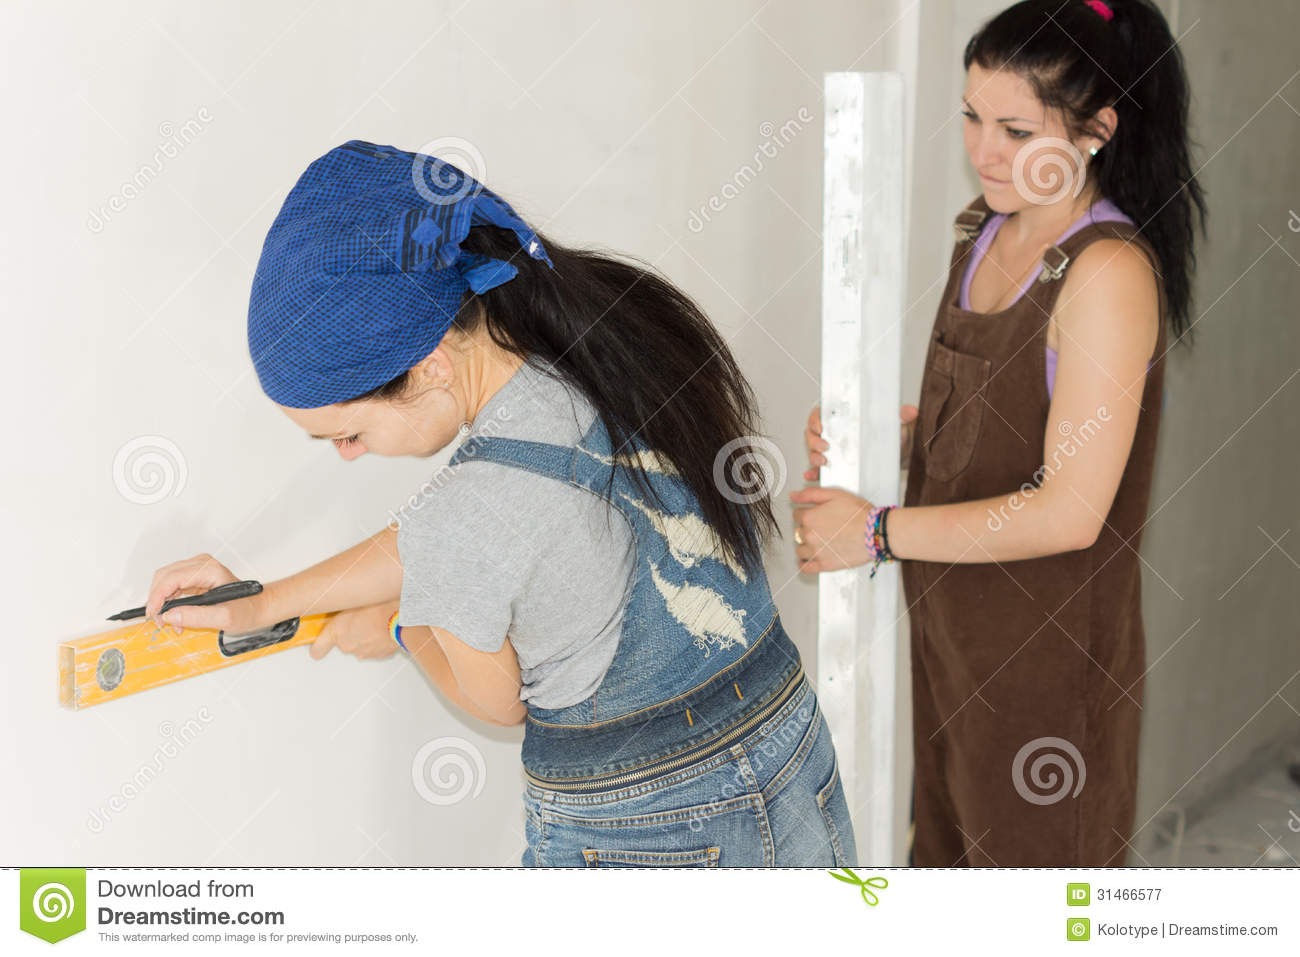 Woman DIY drawing a straight line on a wall